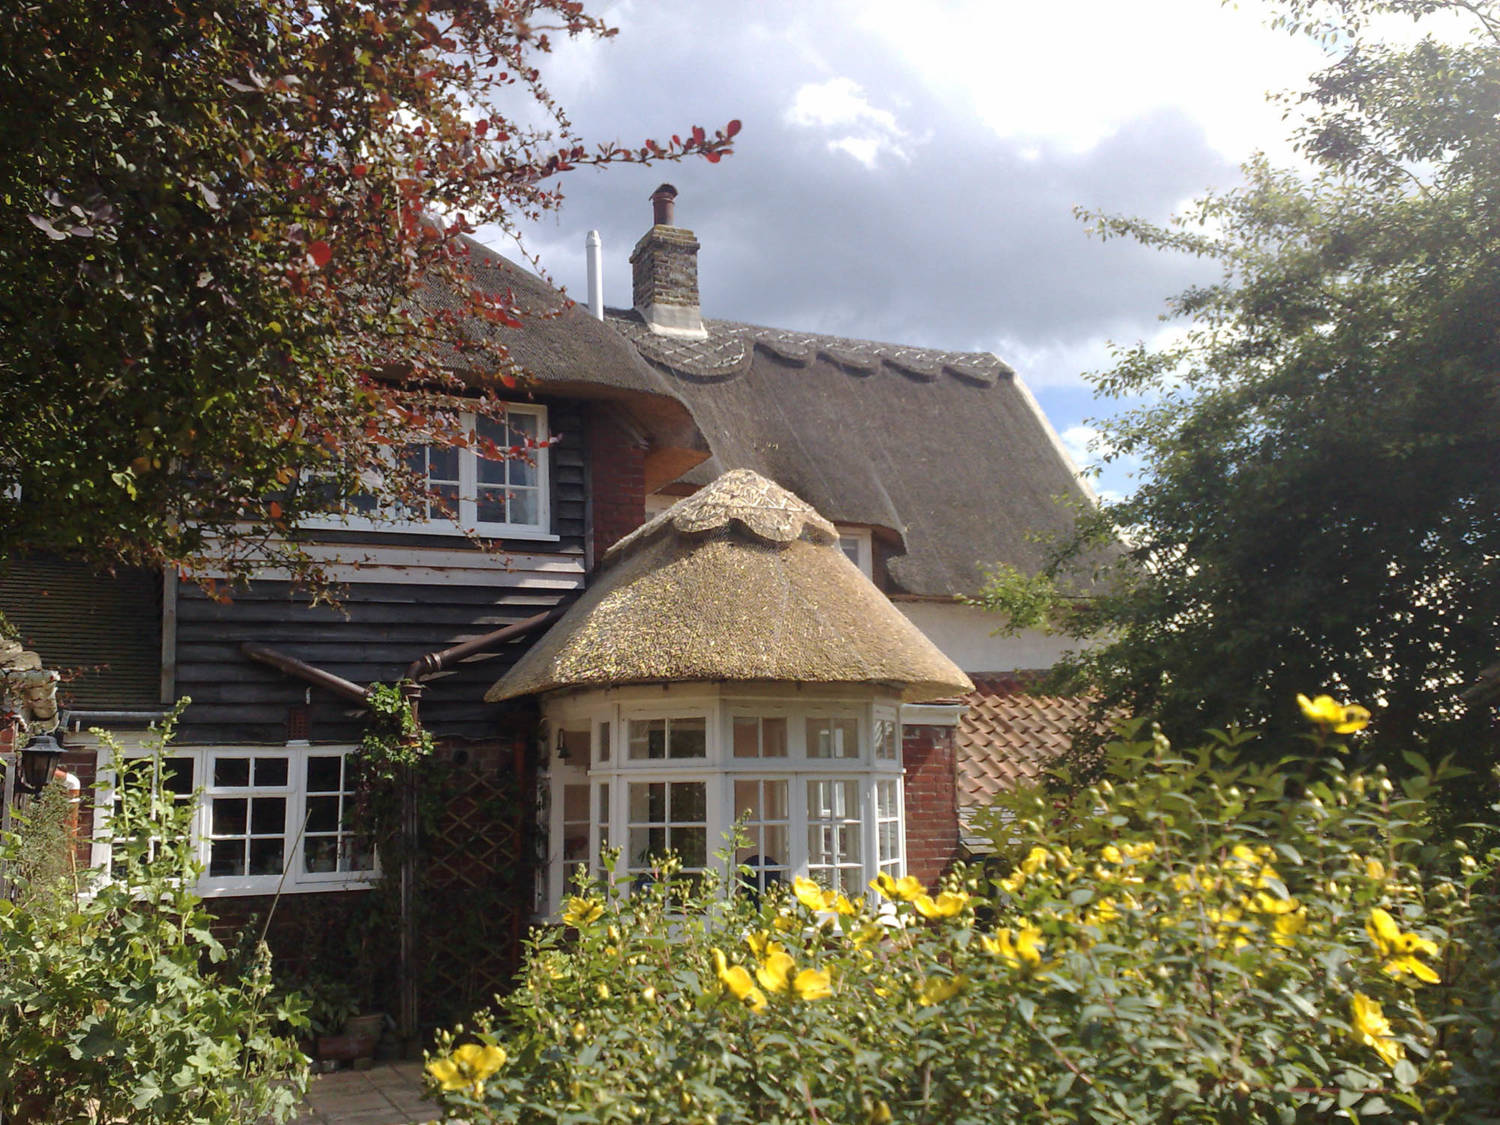 Thatched_Roof_St_Nicholas